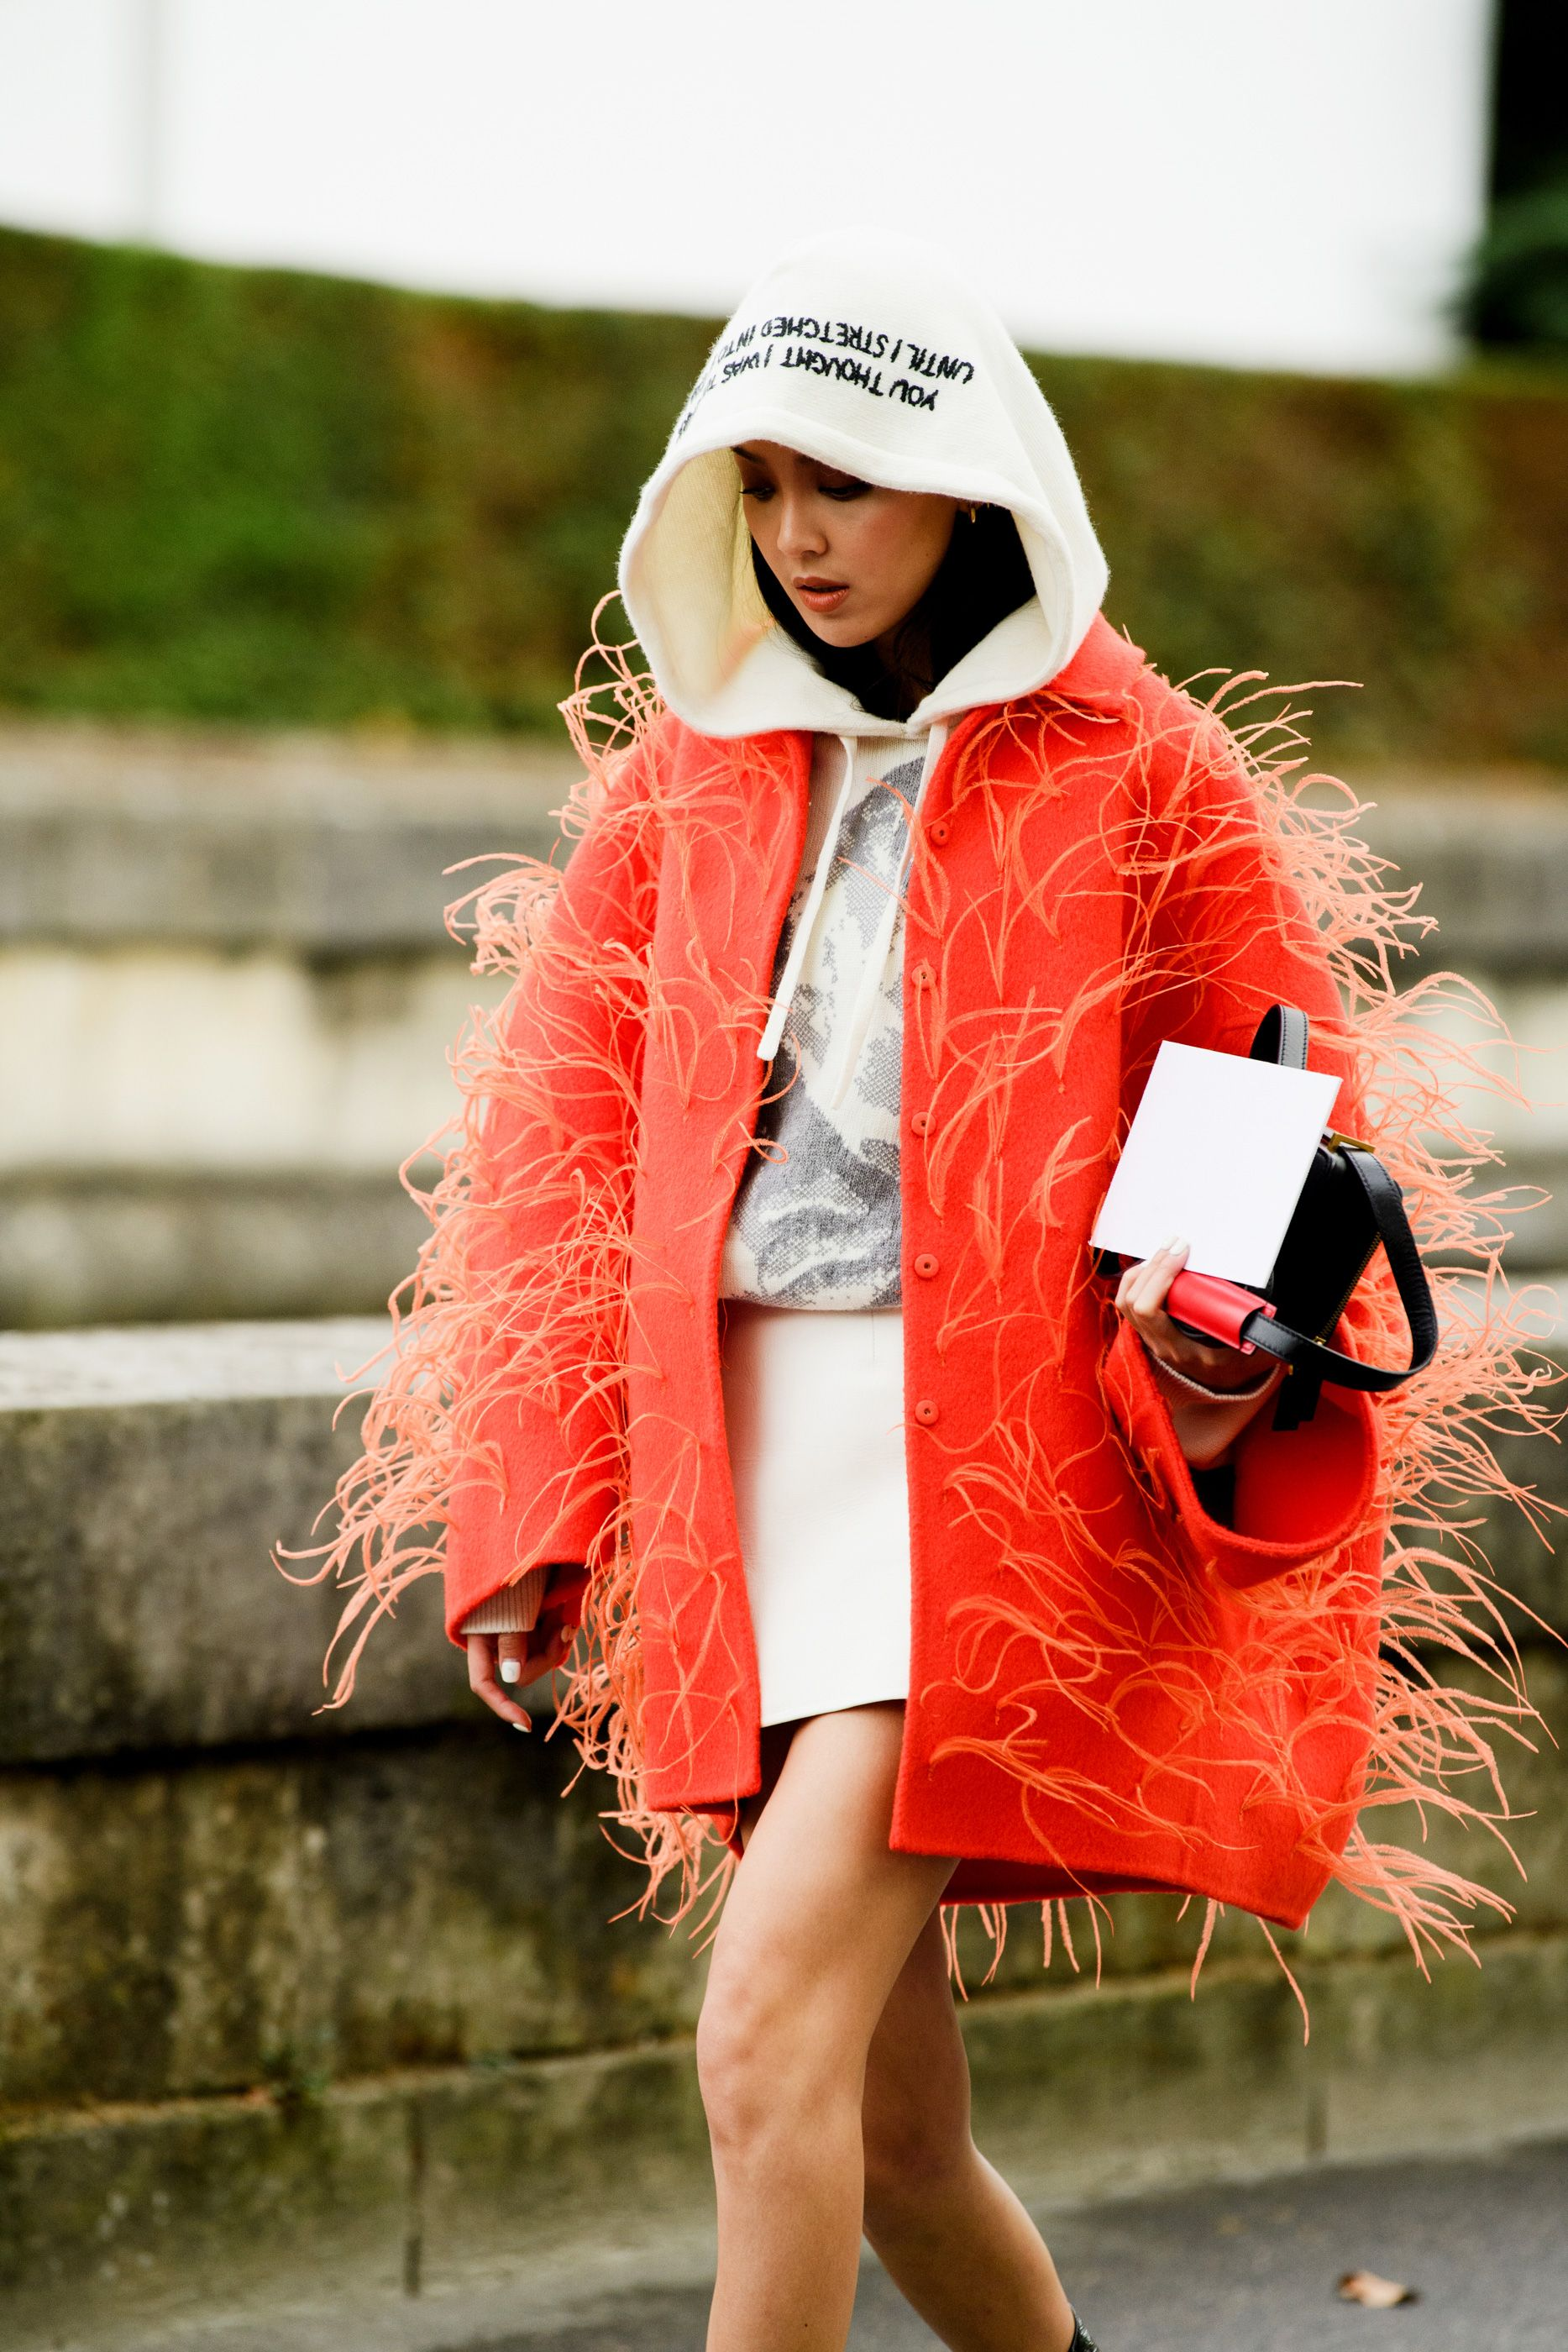 The 6 Biggest Winter Fashion Trends, According to the Experts